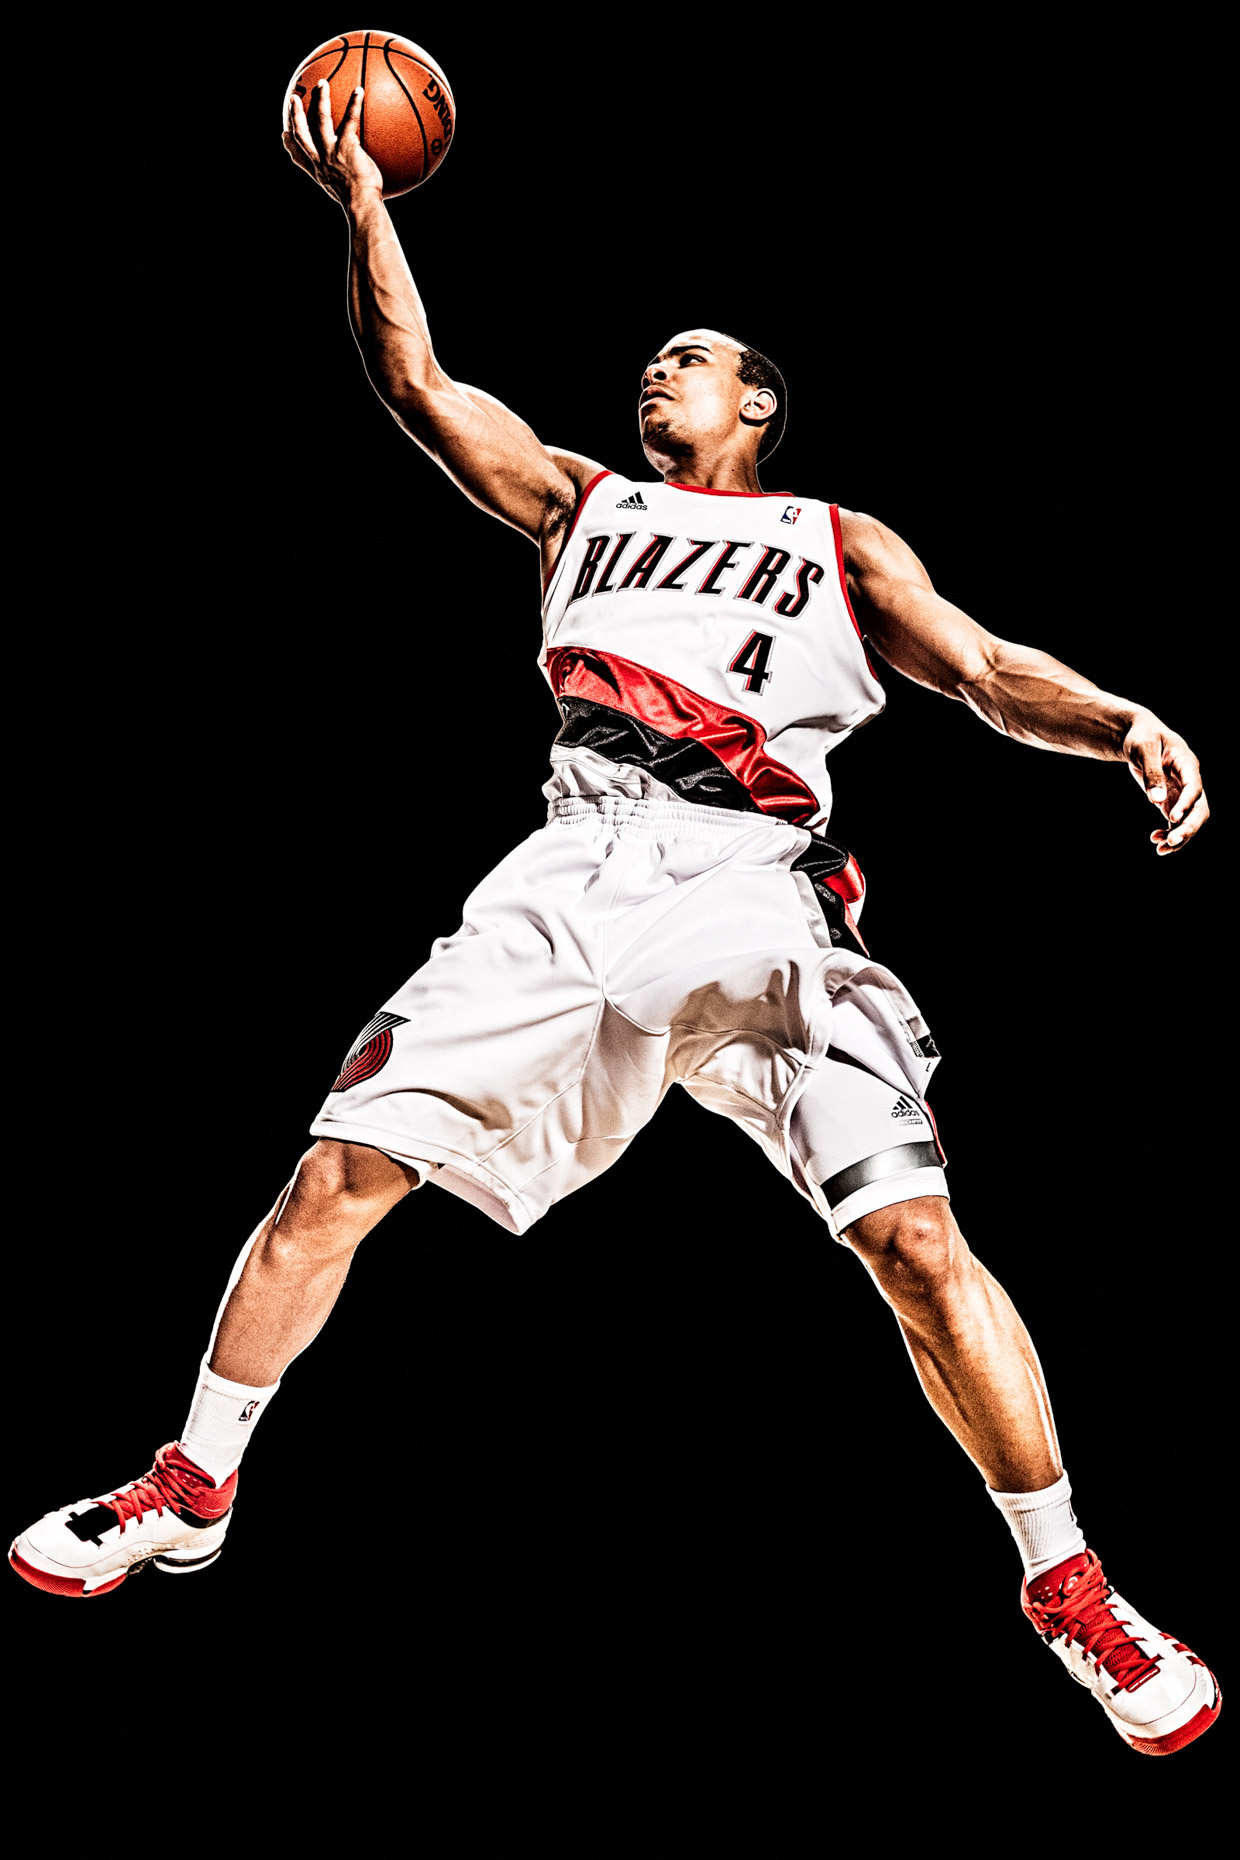 Jerryd Bayless of the Portland Trailblazers NBA